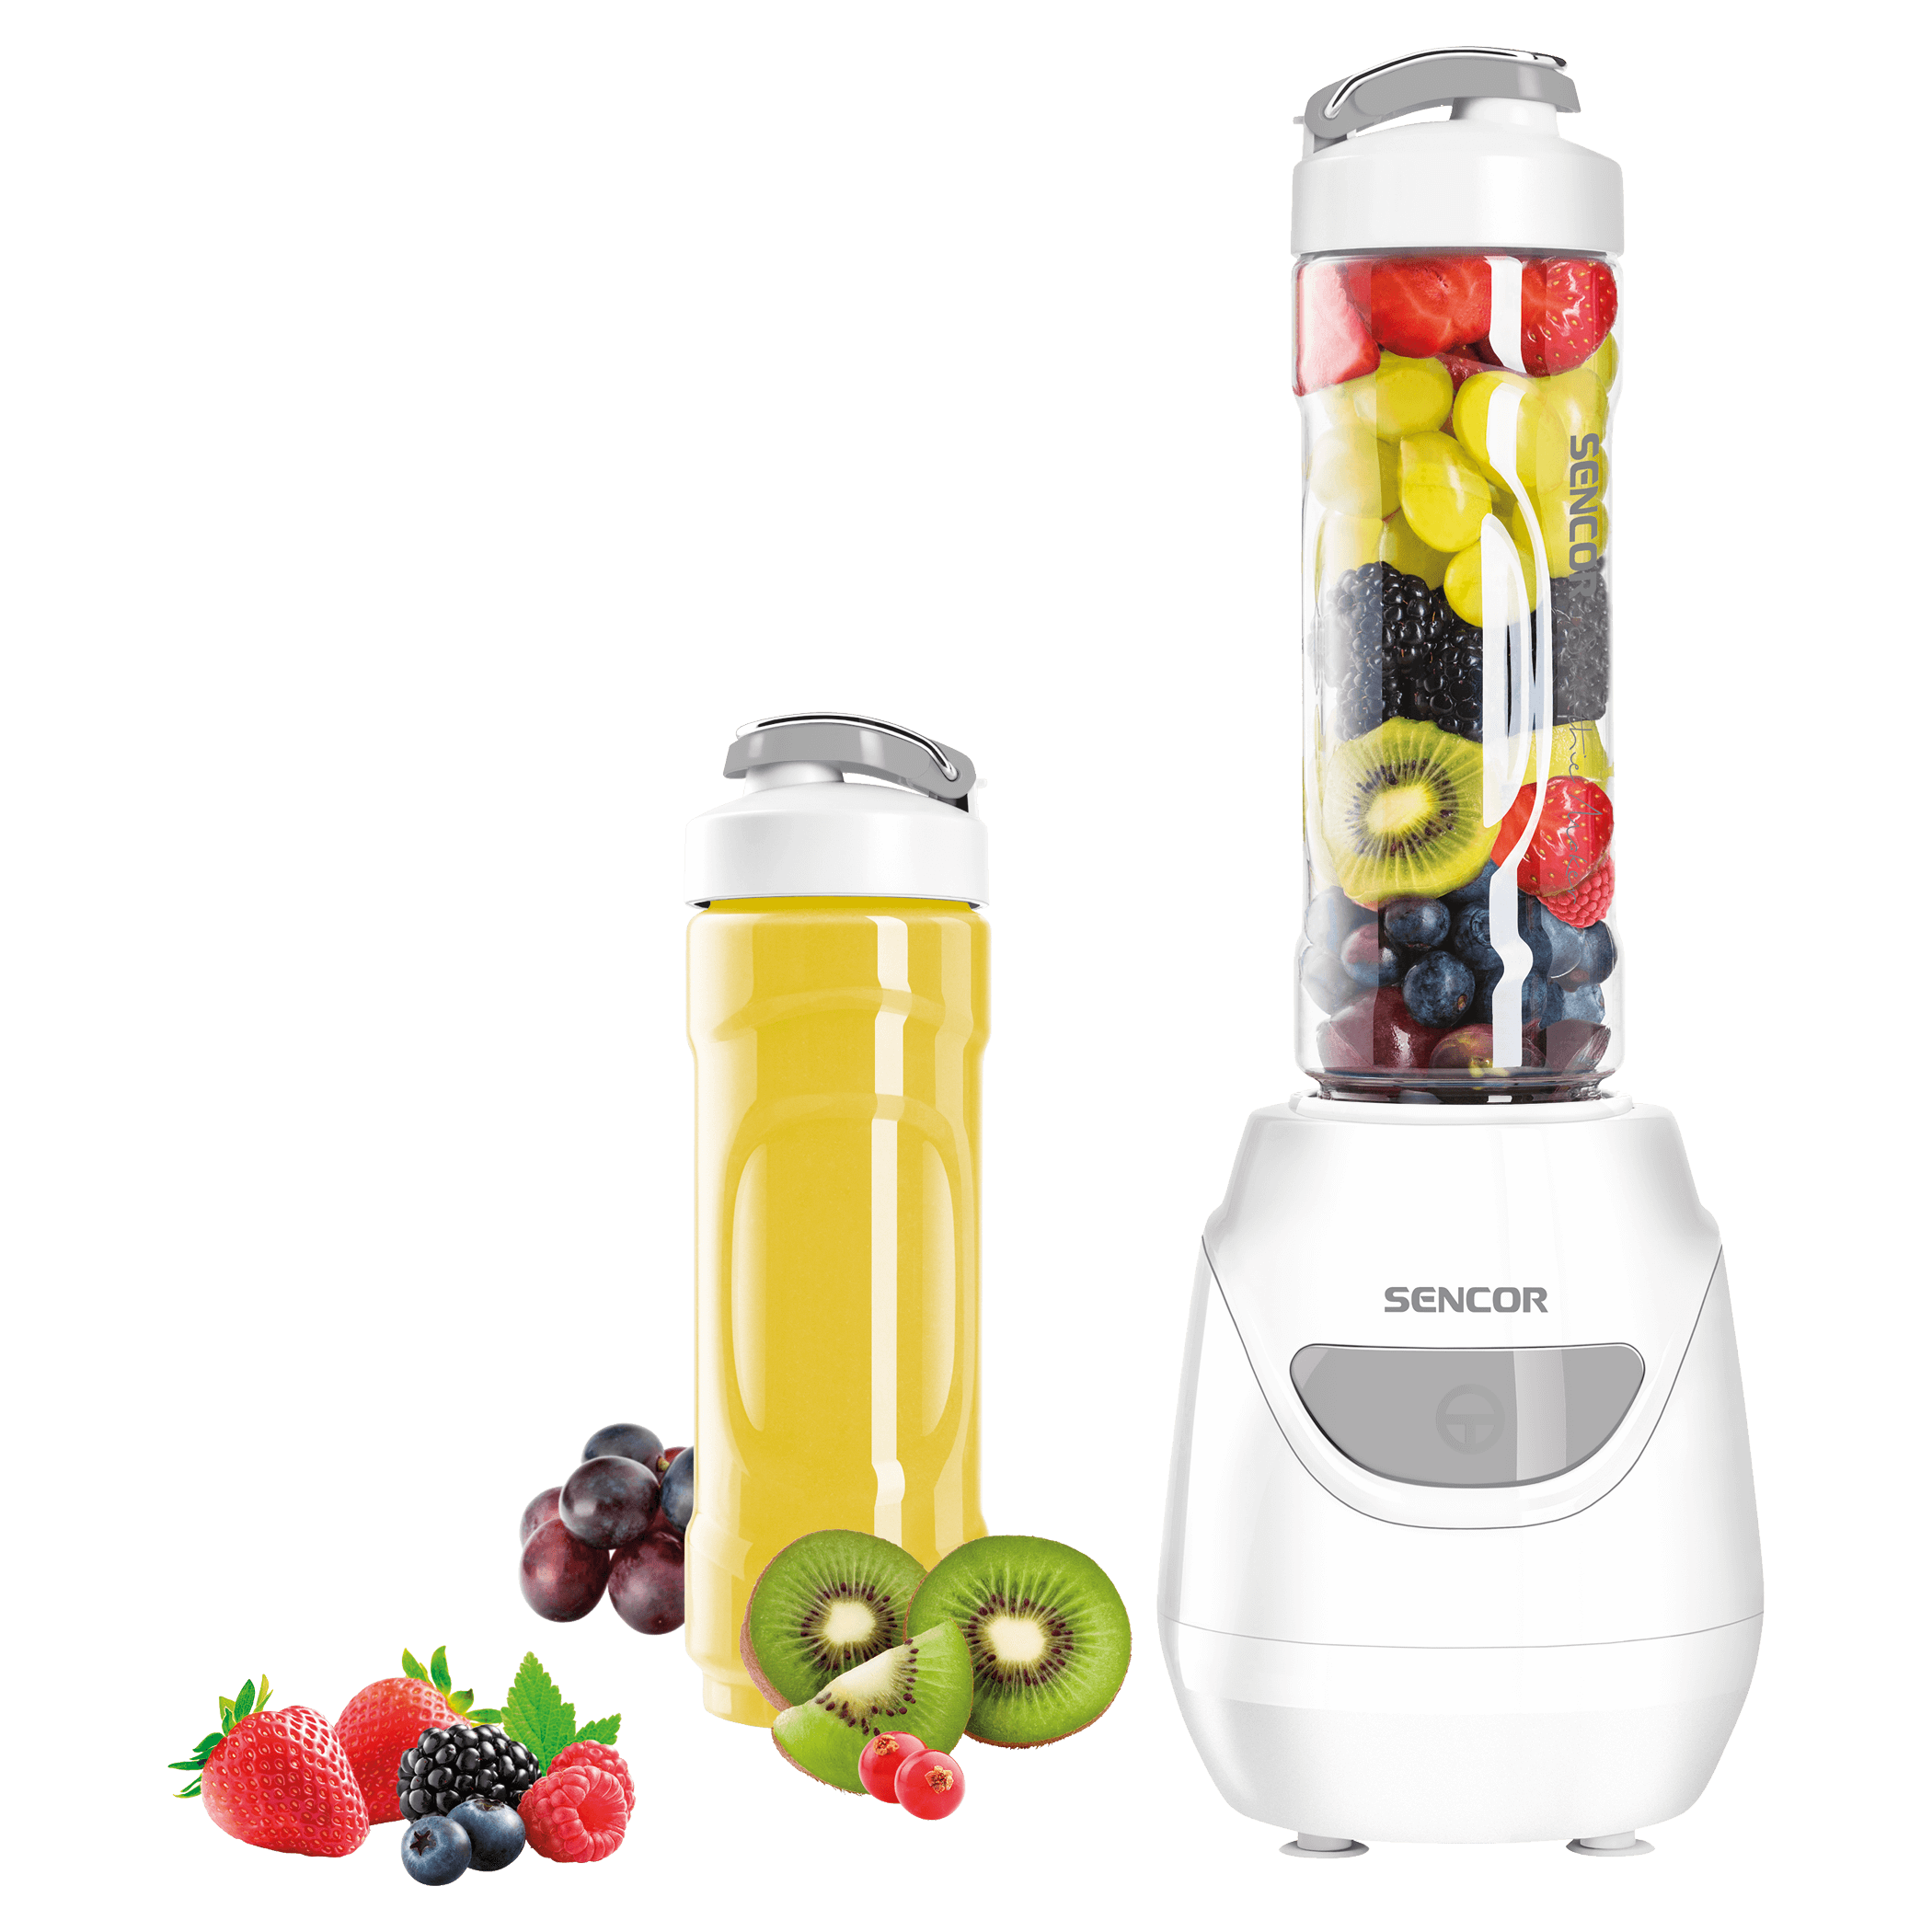 term/fokateg/SBL_3200WH_Smoothie_maker_SENCOR.png